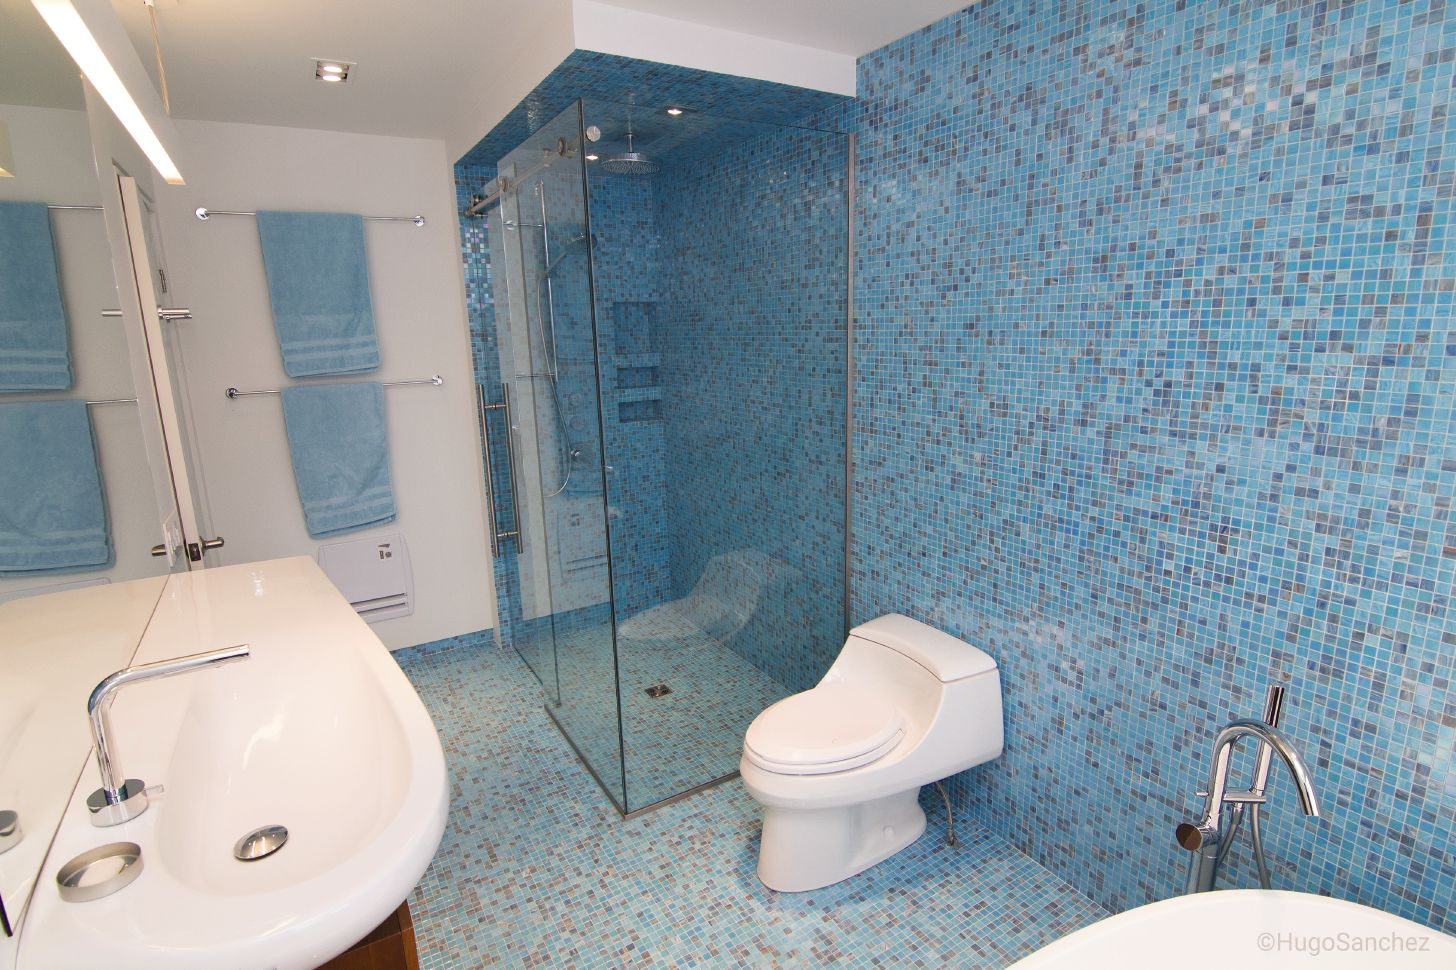 Waterproofing bathroom tile - It S Hard To Tell Where The Walls Begin And The Floor Ends In This Beautiful Blue Tiled Bathroom With Curbless Shower